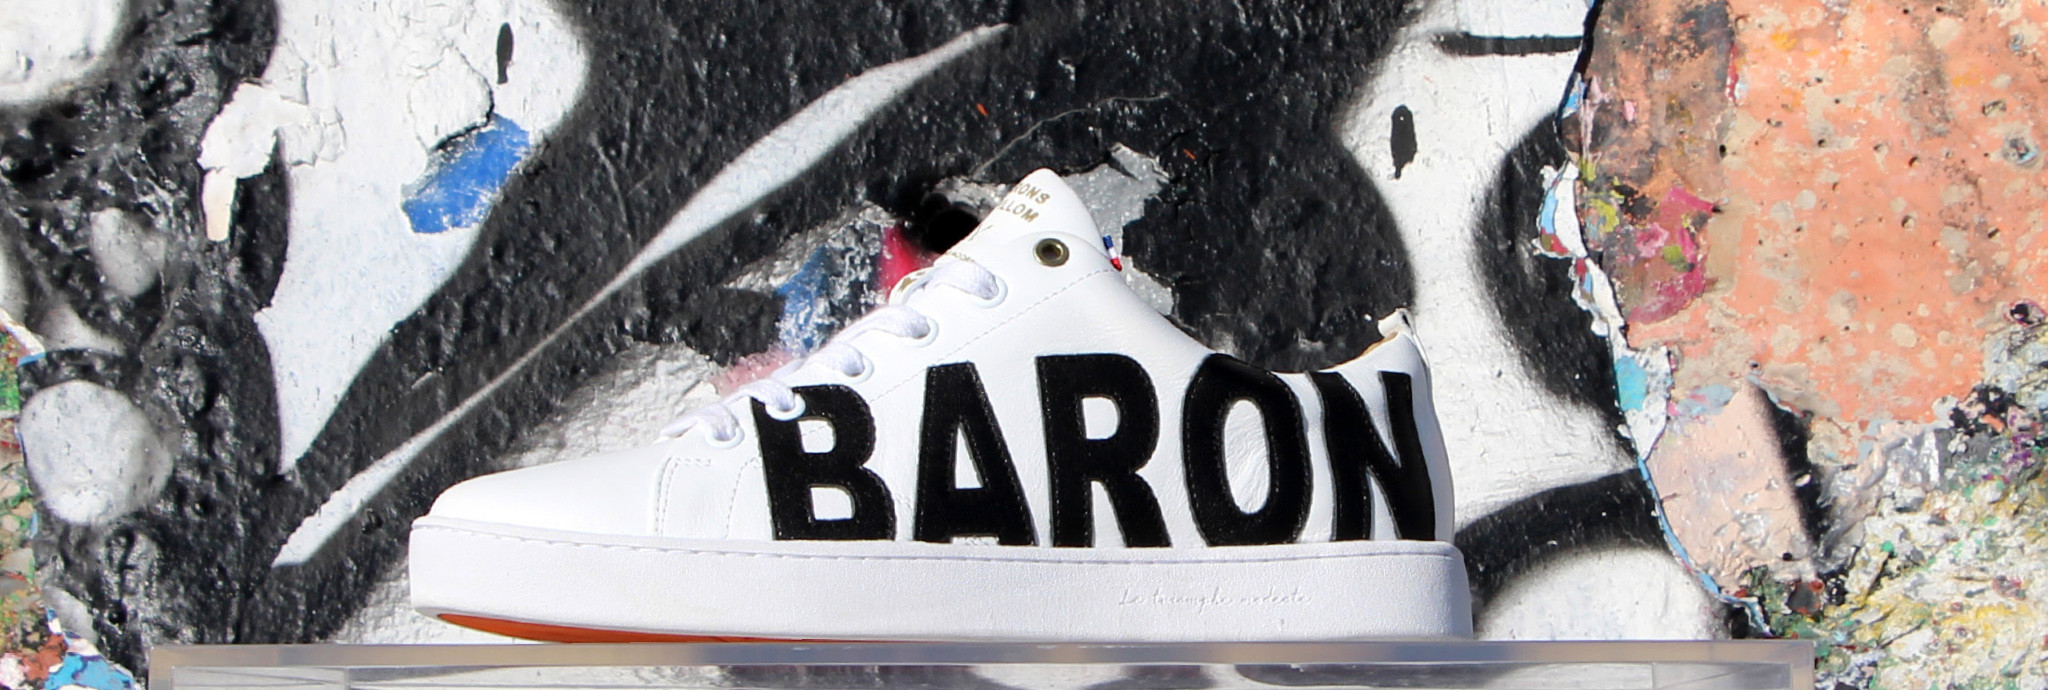 Nos ambassadeurs Baron Papillon sneaker de luxe made in France